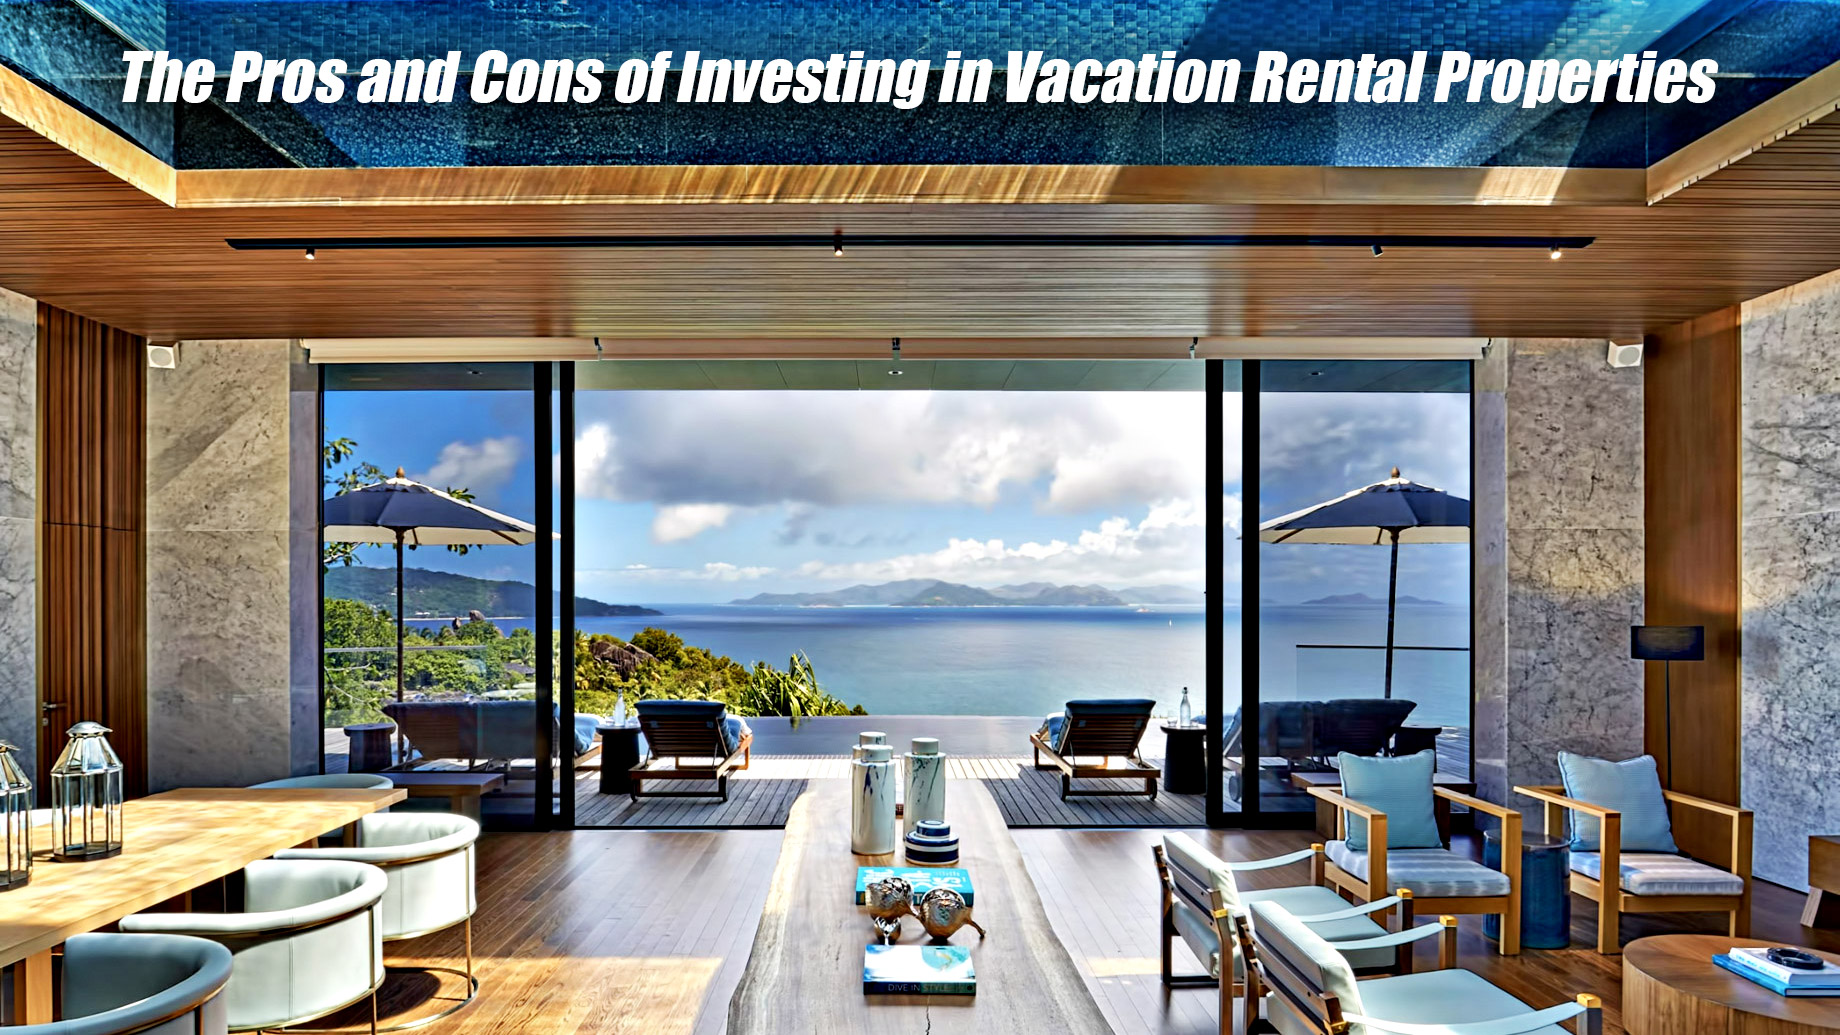 The Pros and Cons of Investing in Vacation Rental Properties